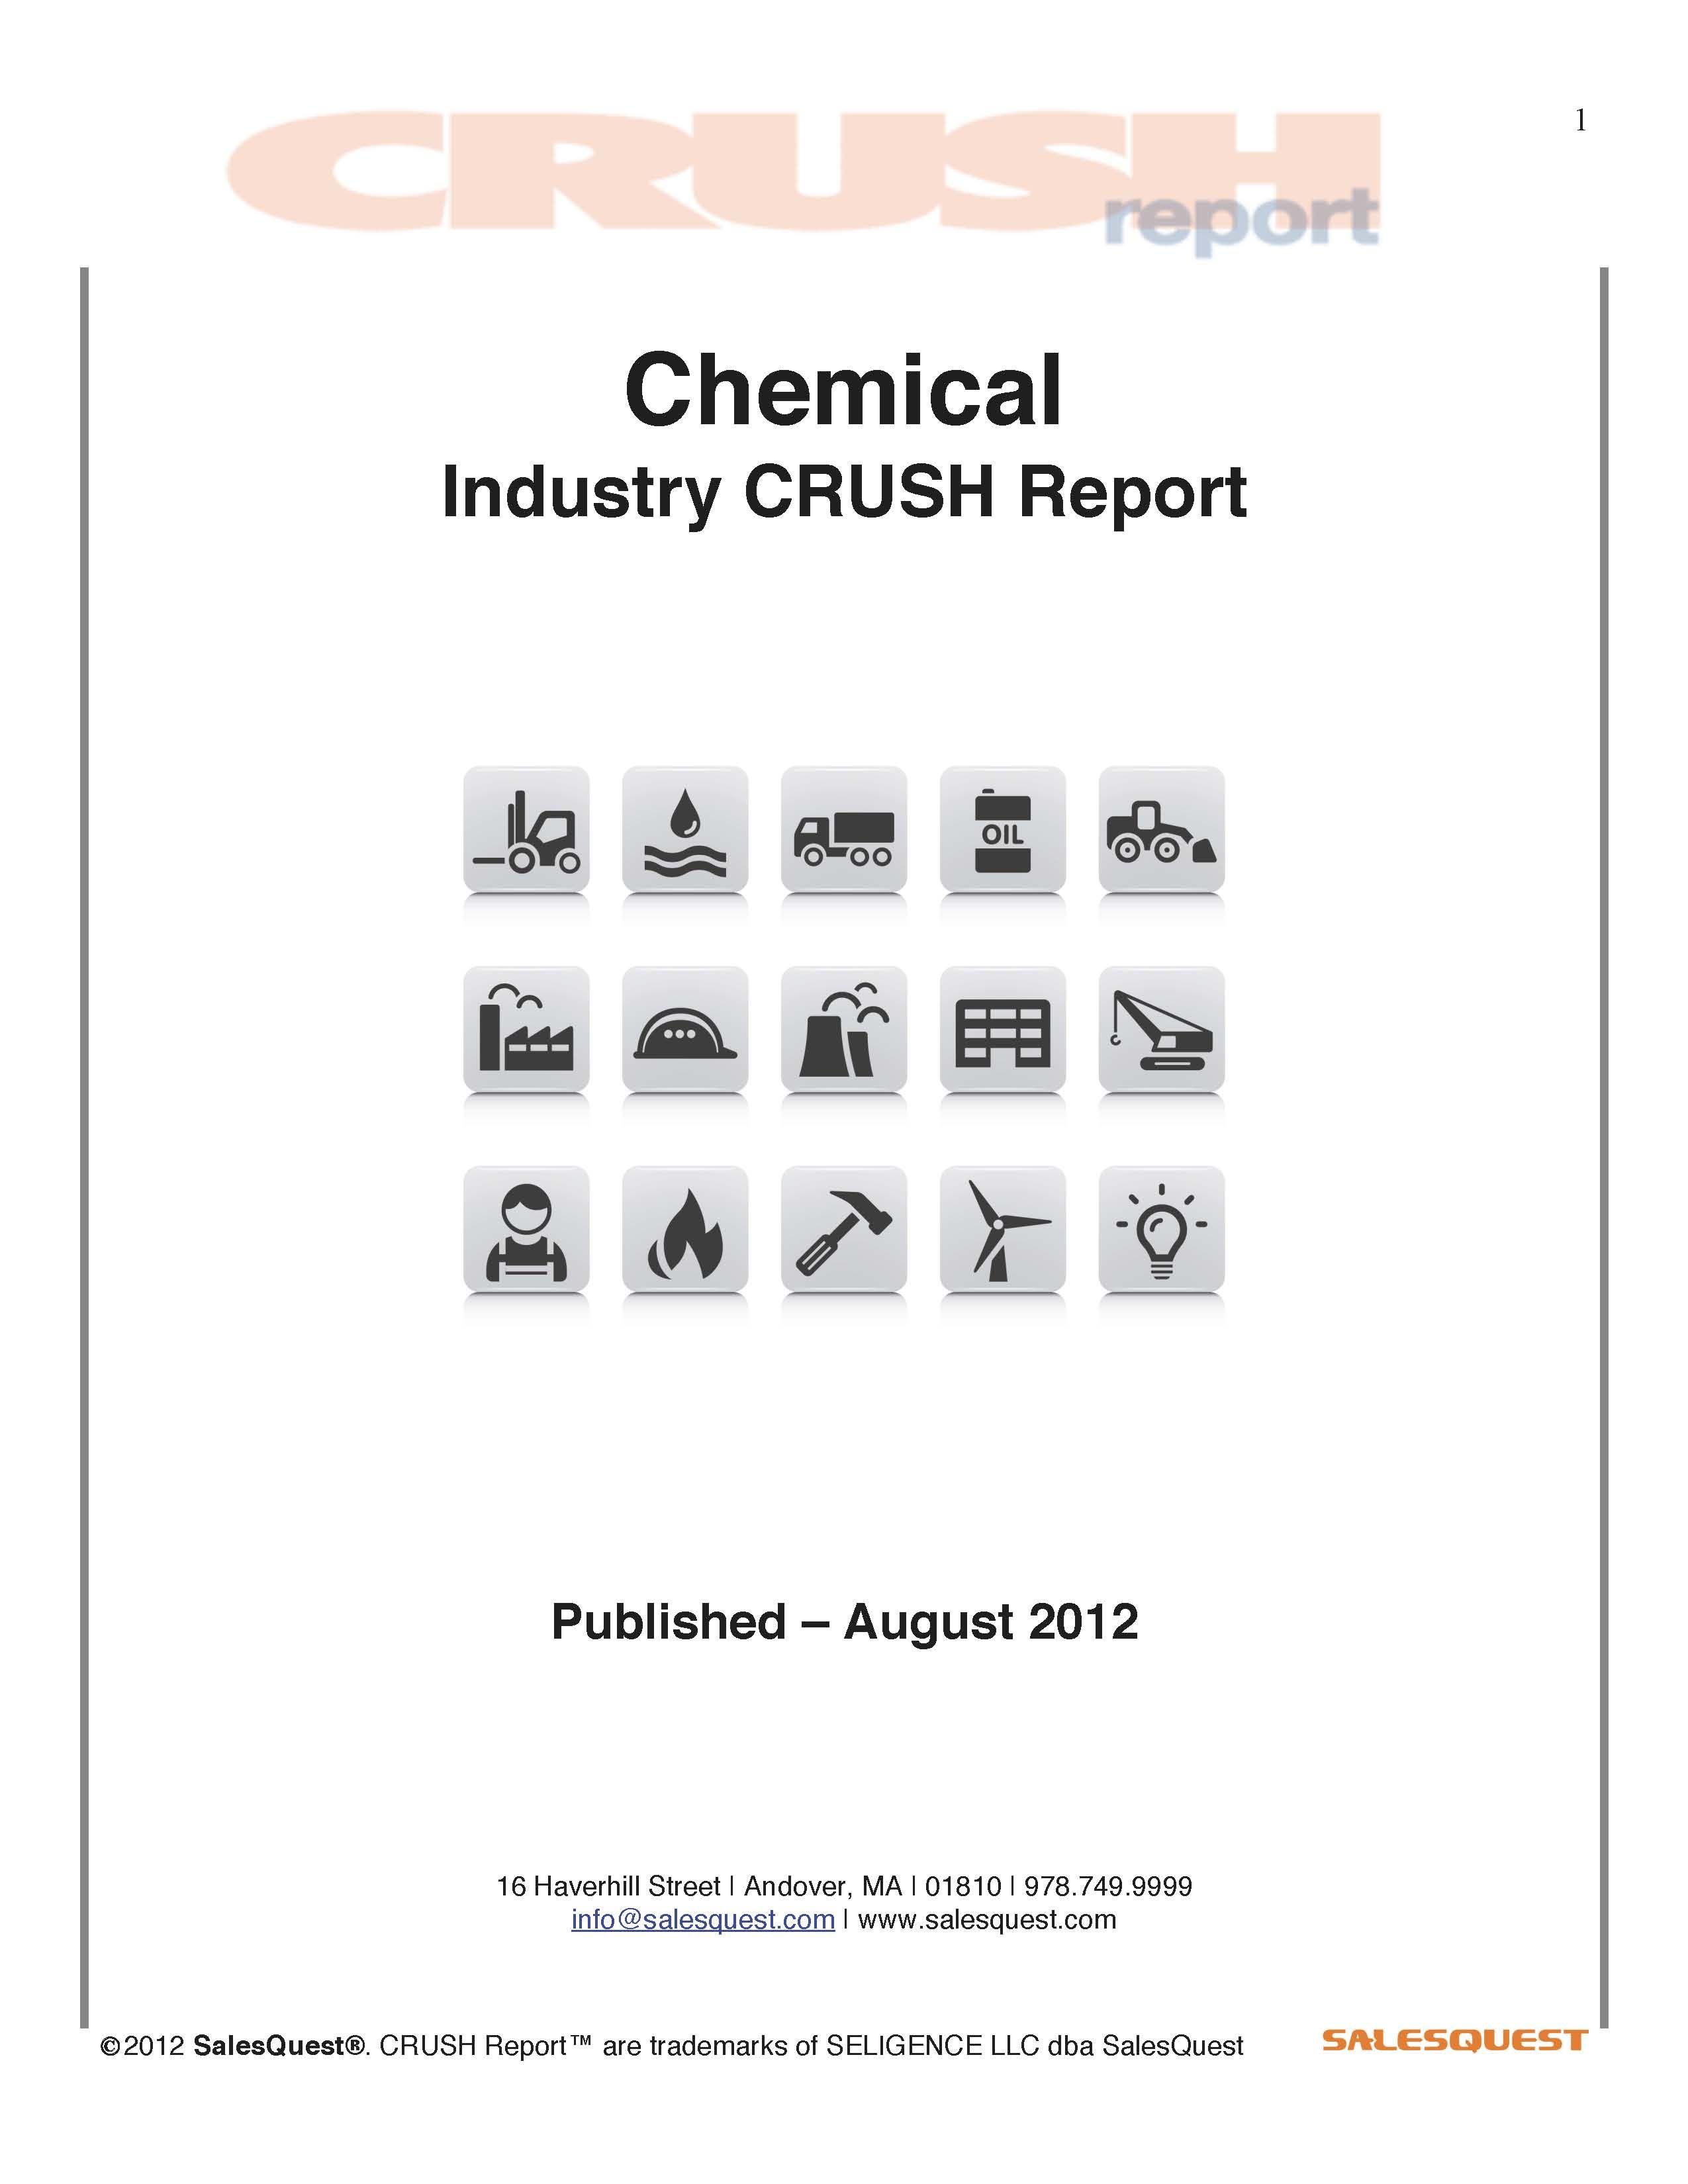 The Chemical Industry uses chemical reactions to turn raw materials into several different products. Examples of products created within the chemical industry include pharmaceuticals for the health care industry and artificial rubber for the auto industry.    http://estore.salesquest.com/CRUSH-reports/Chemicals